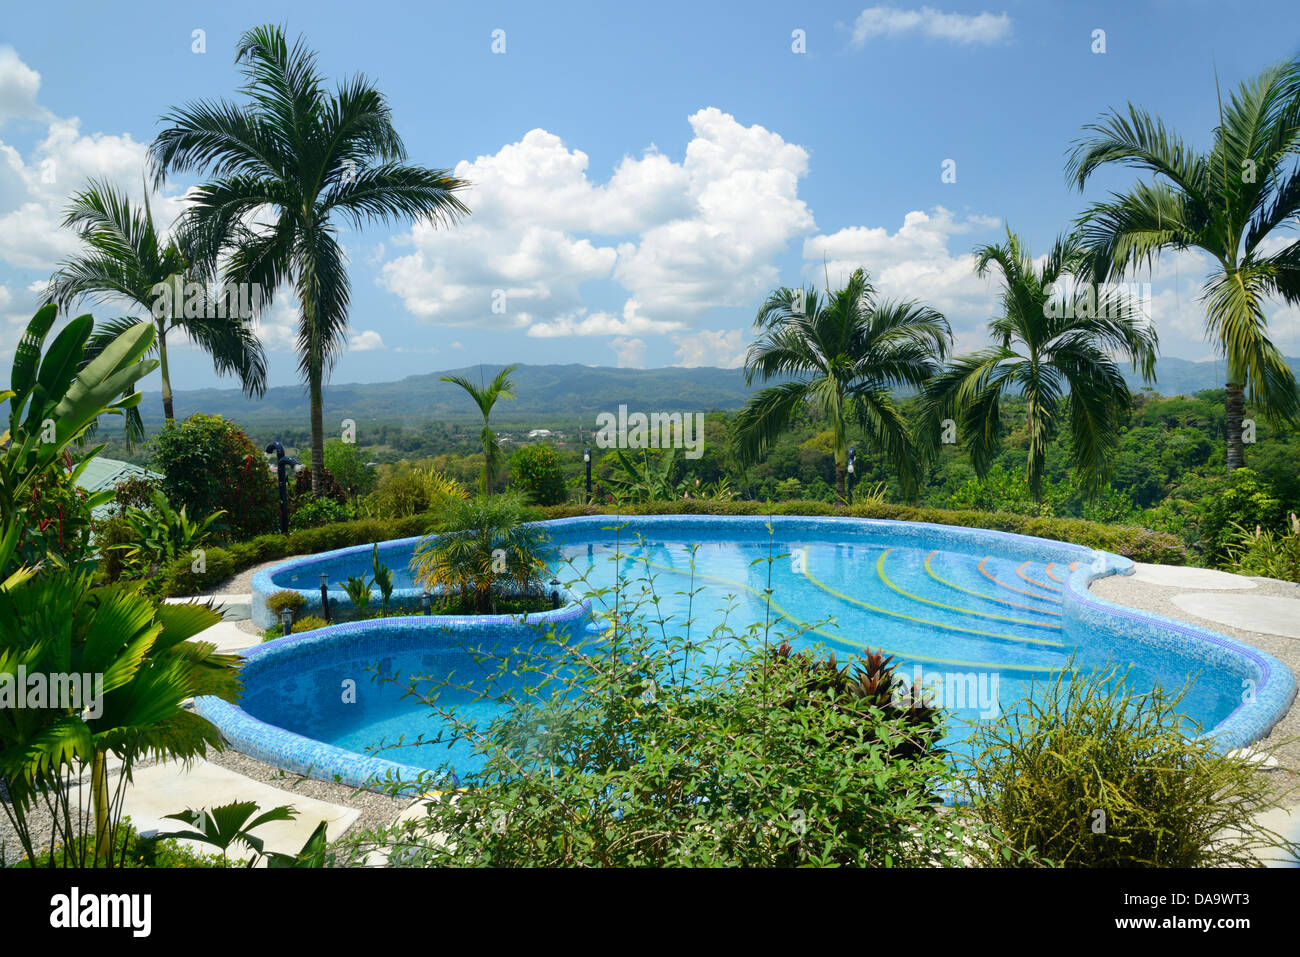 Central america costa rica golfito landscape nature for Pool design costa rica